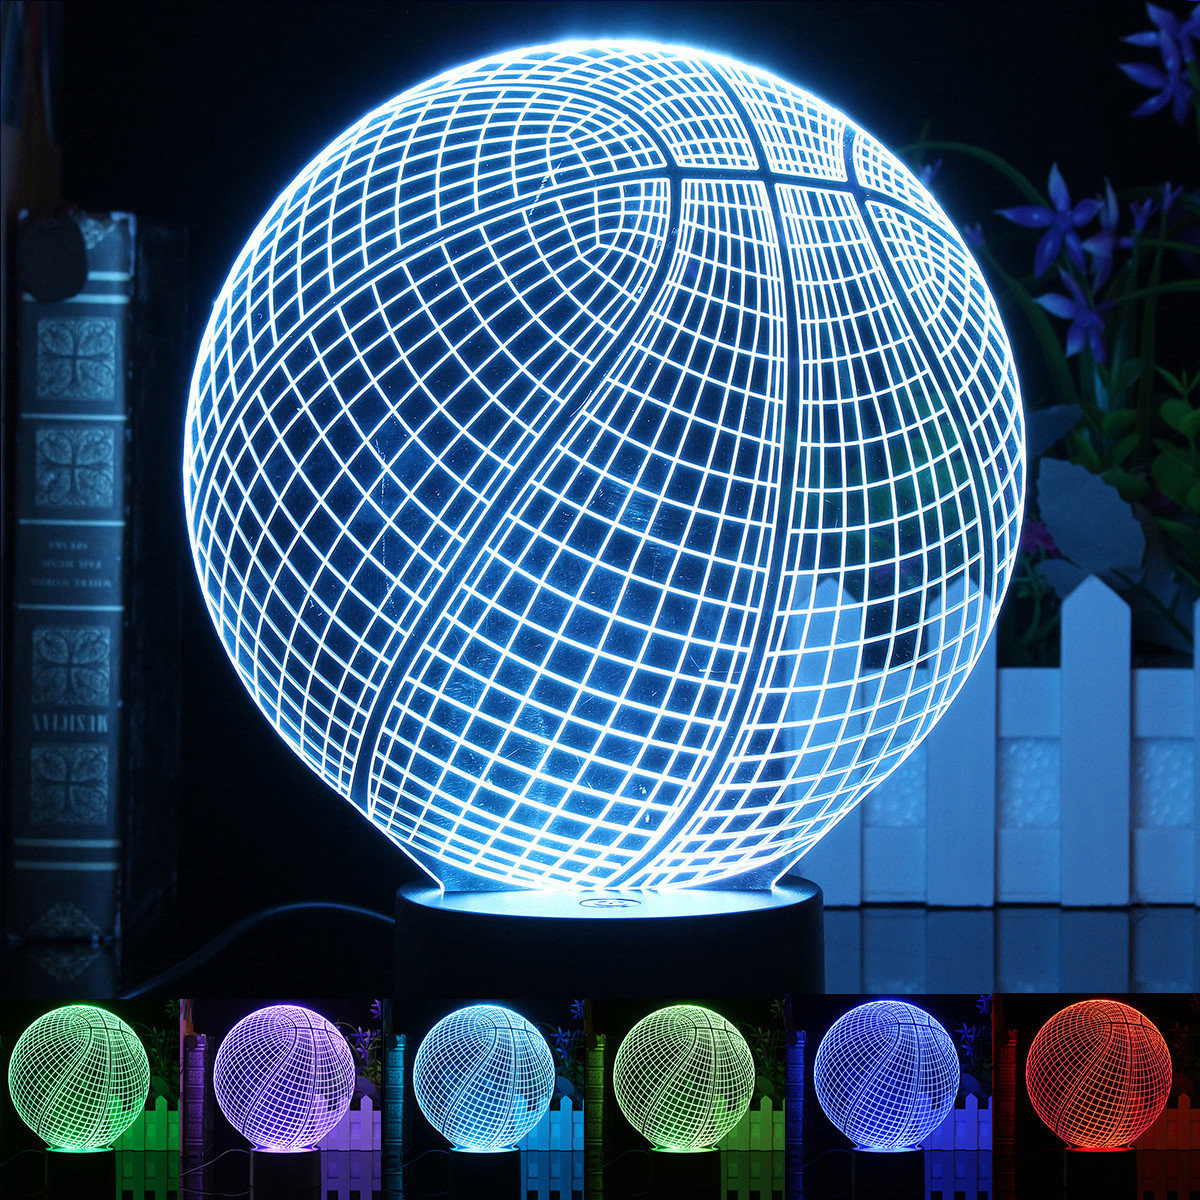 World Globe Vase Of 3d Illusion Led Basketball Night Light 7 Color Changing Desk Table Inside 3d Illusion Led Basketball Night Light 7 Color Changing Desk Table Lamp Birthday Xmas Party Gift